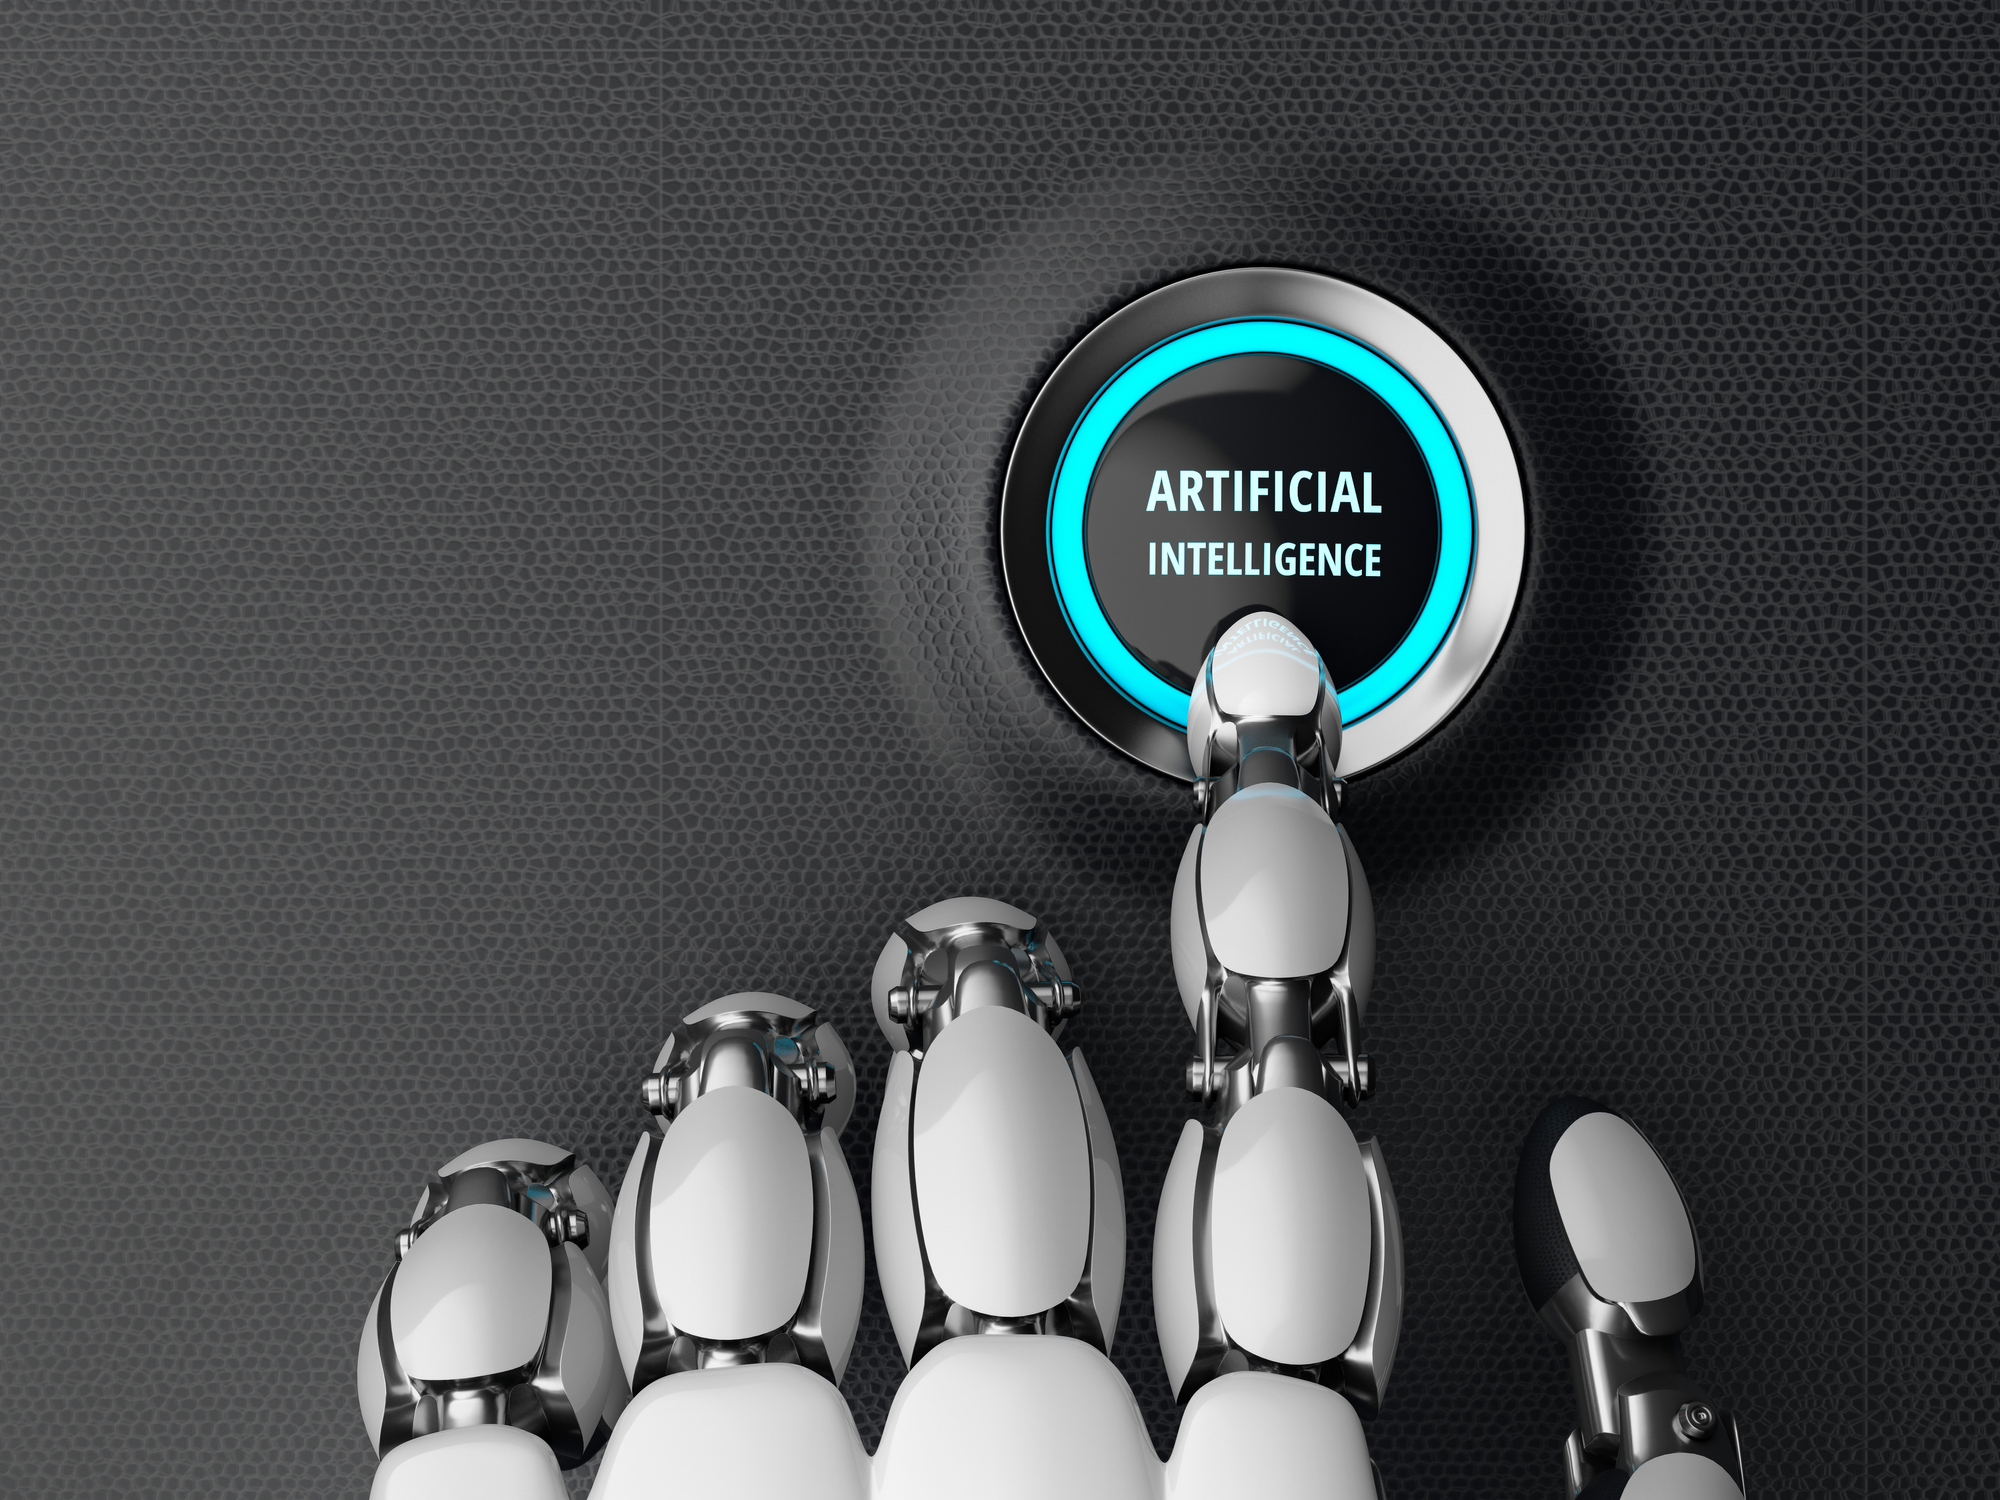 Big data and AI are powerful digital tools which allow business frontrunners to manipulate the faint-hearted consumers as they please. (iStock)